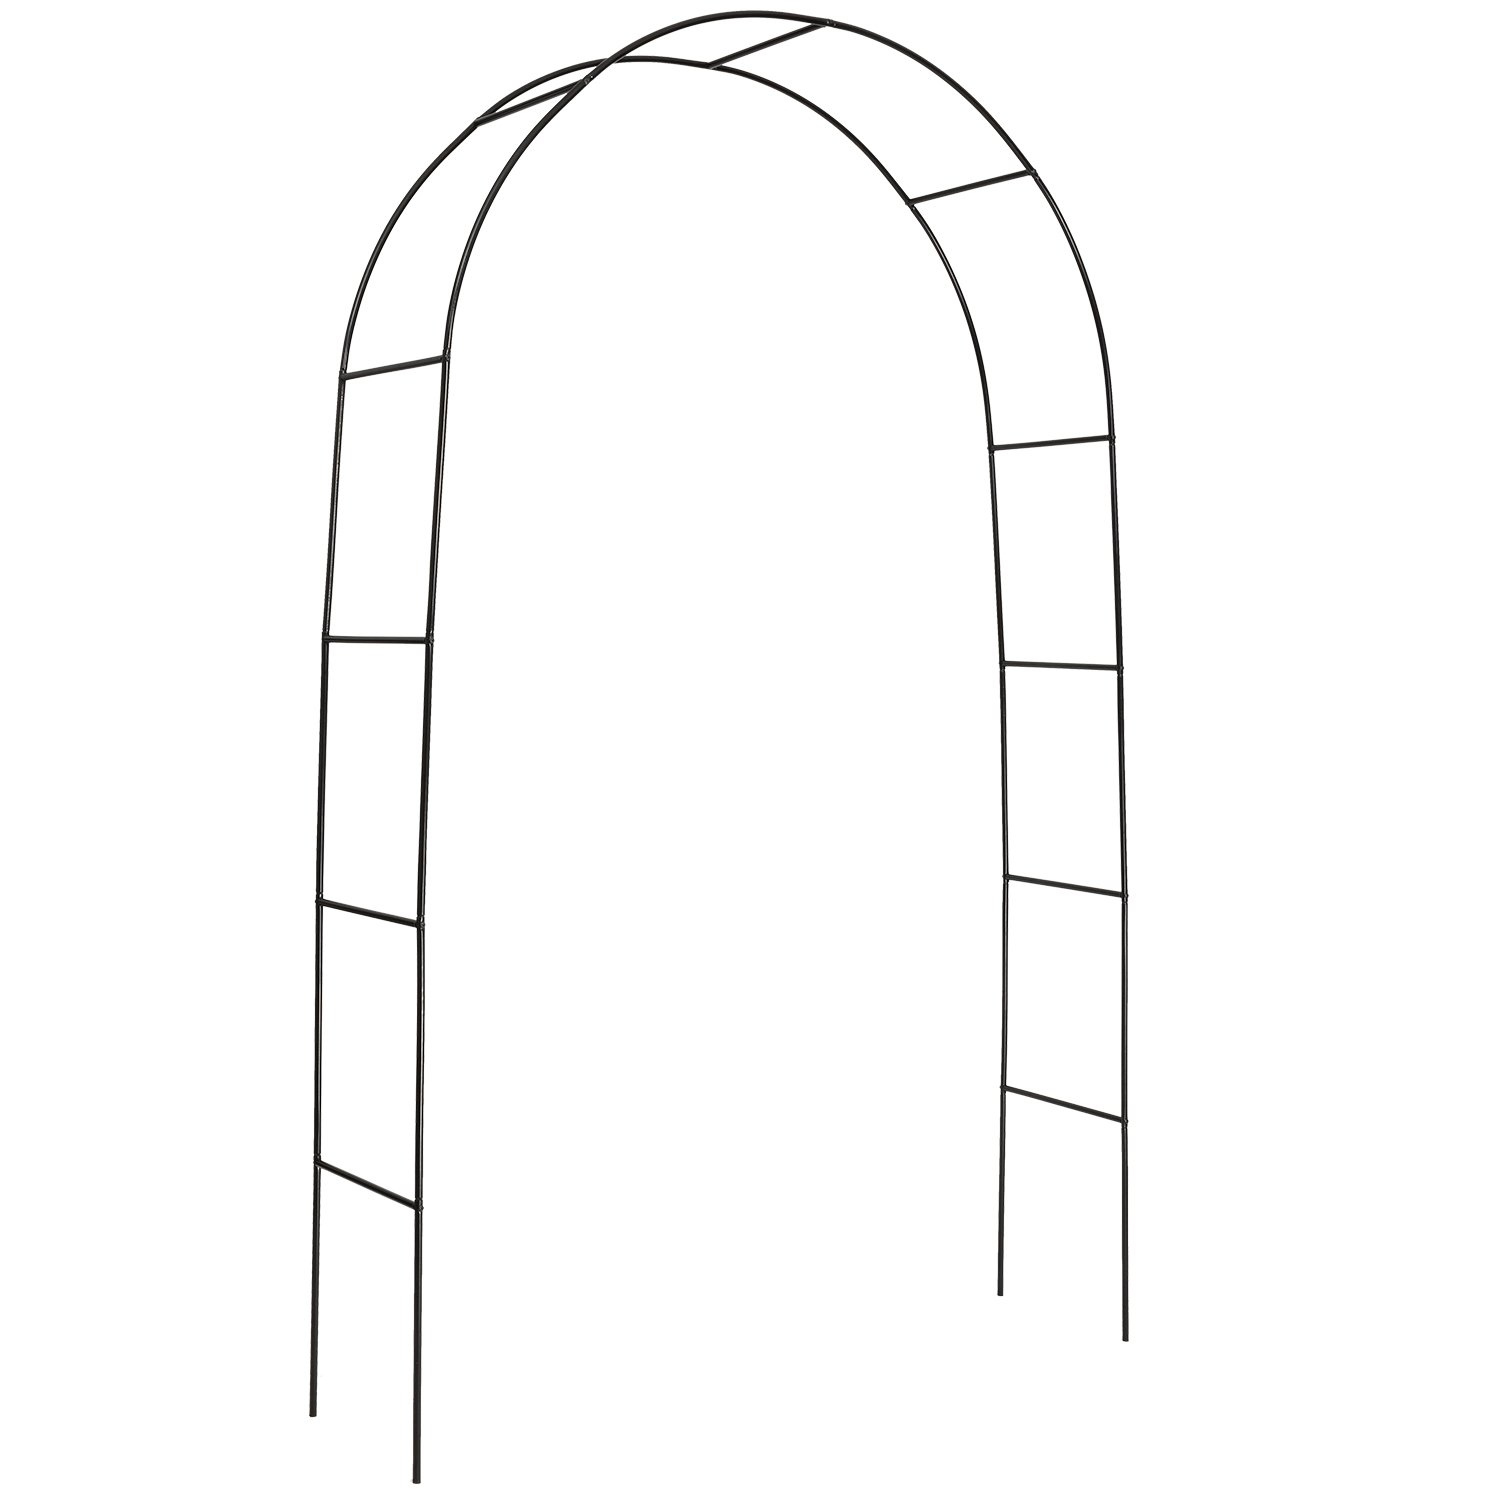 DOEWORKS Metal Black Garden Arch with Round Top, 7'9'' High x 4'7''Wide